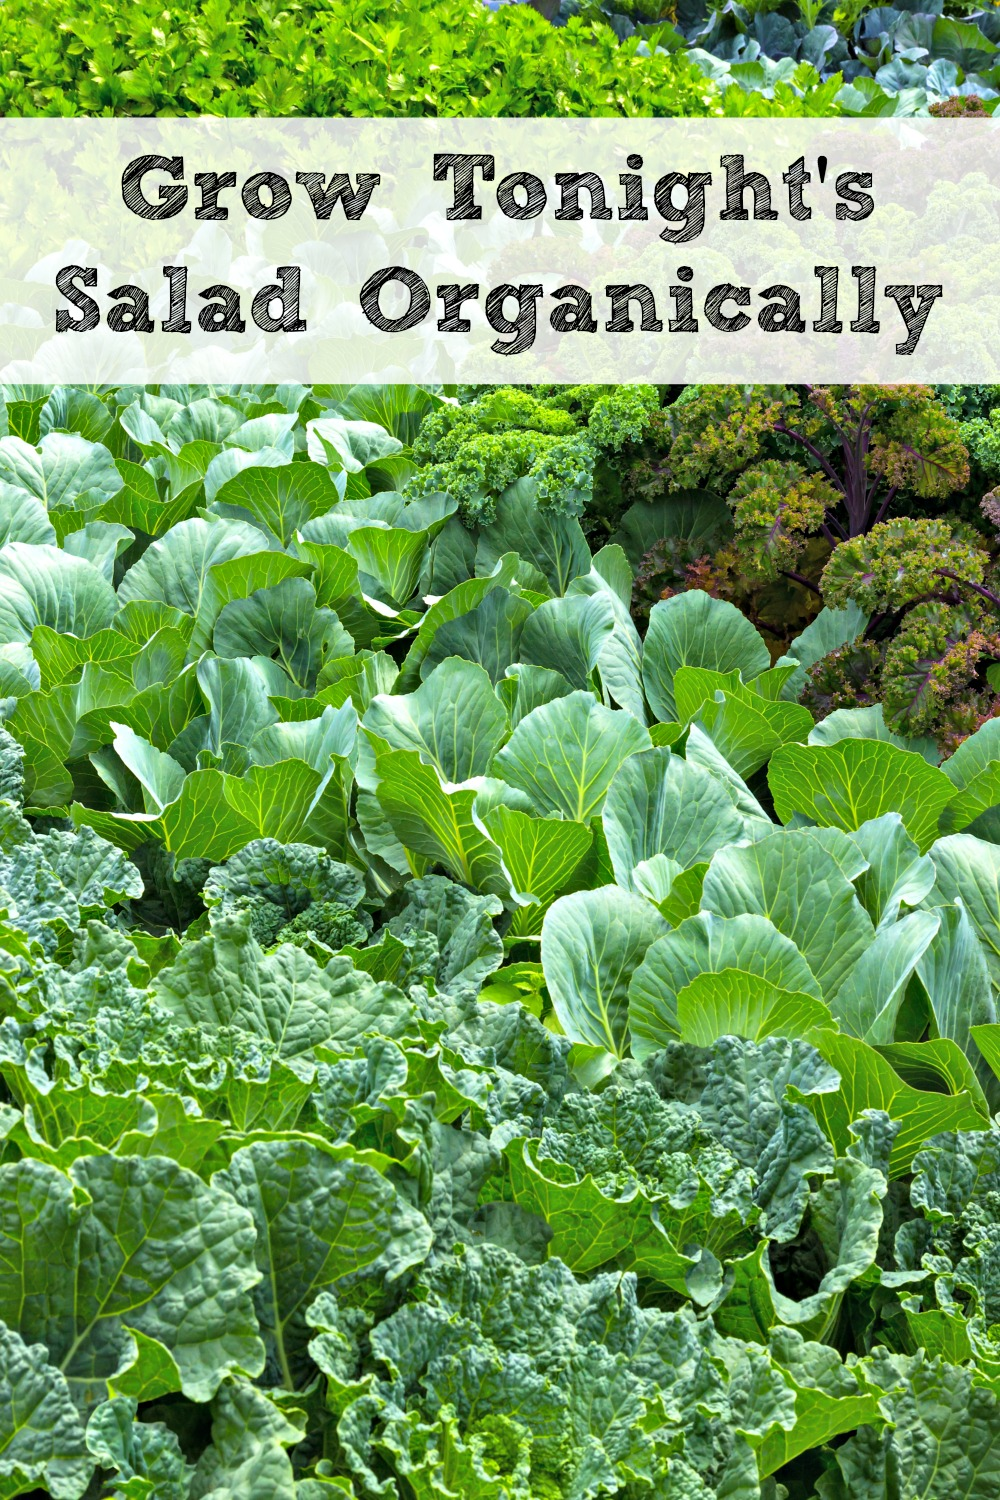 You can grow everything you need for your salads right in your own garden and it is so easy and fun to do!